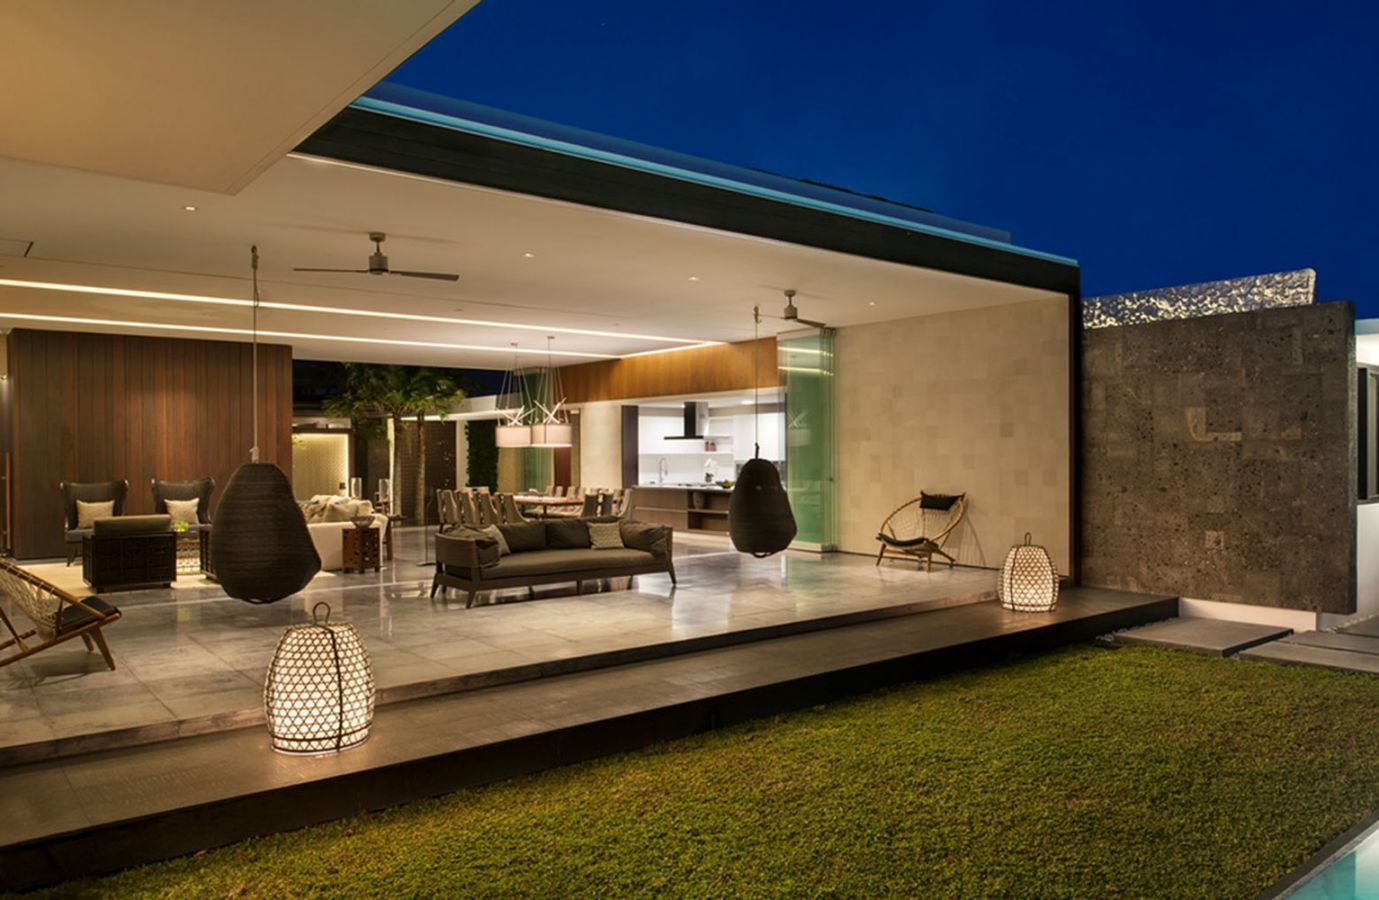 Villa WRK in Kabupaten Badung, Indonesia by Parametr Indonesia